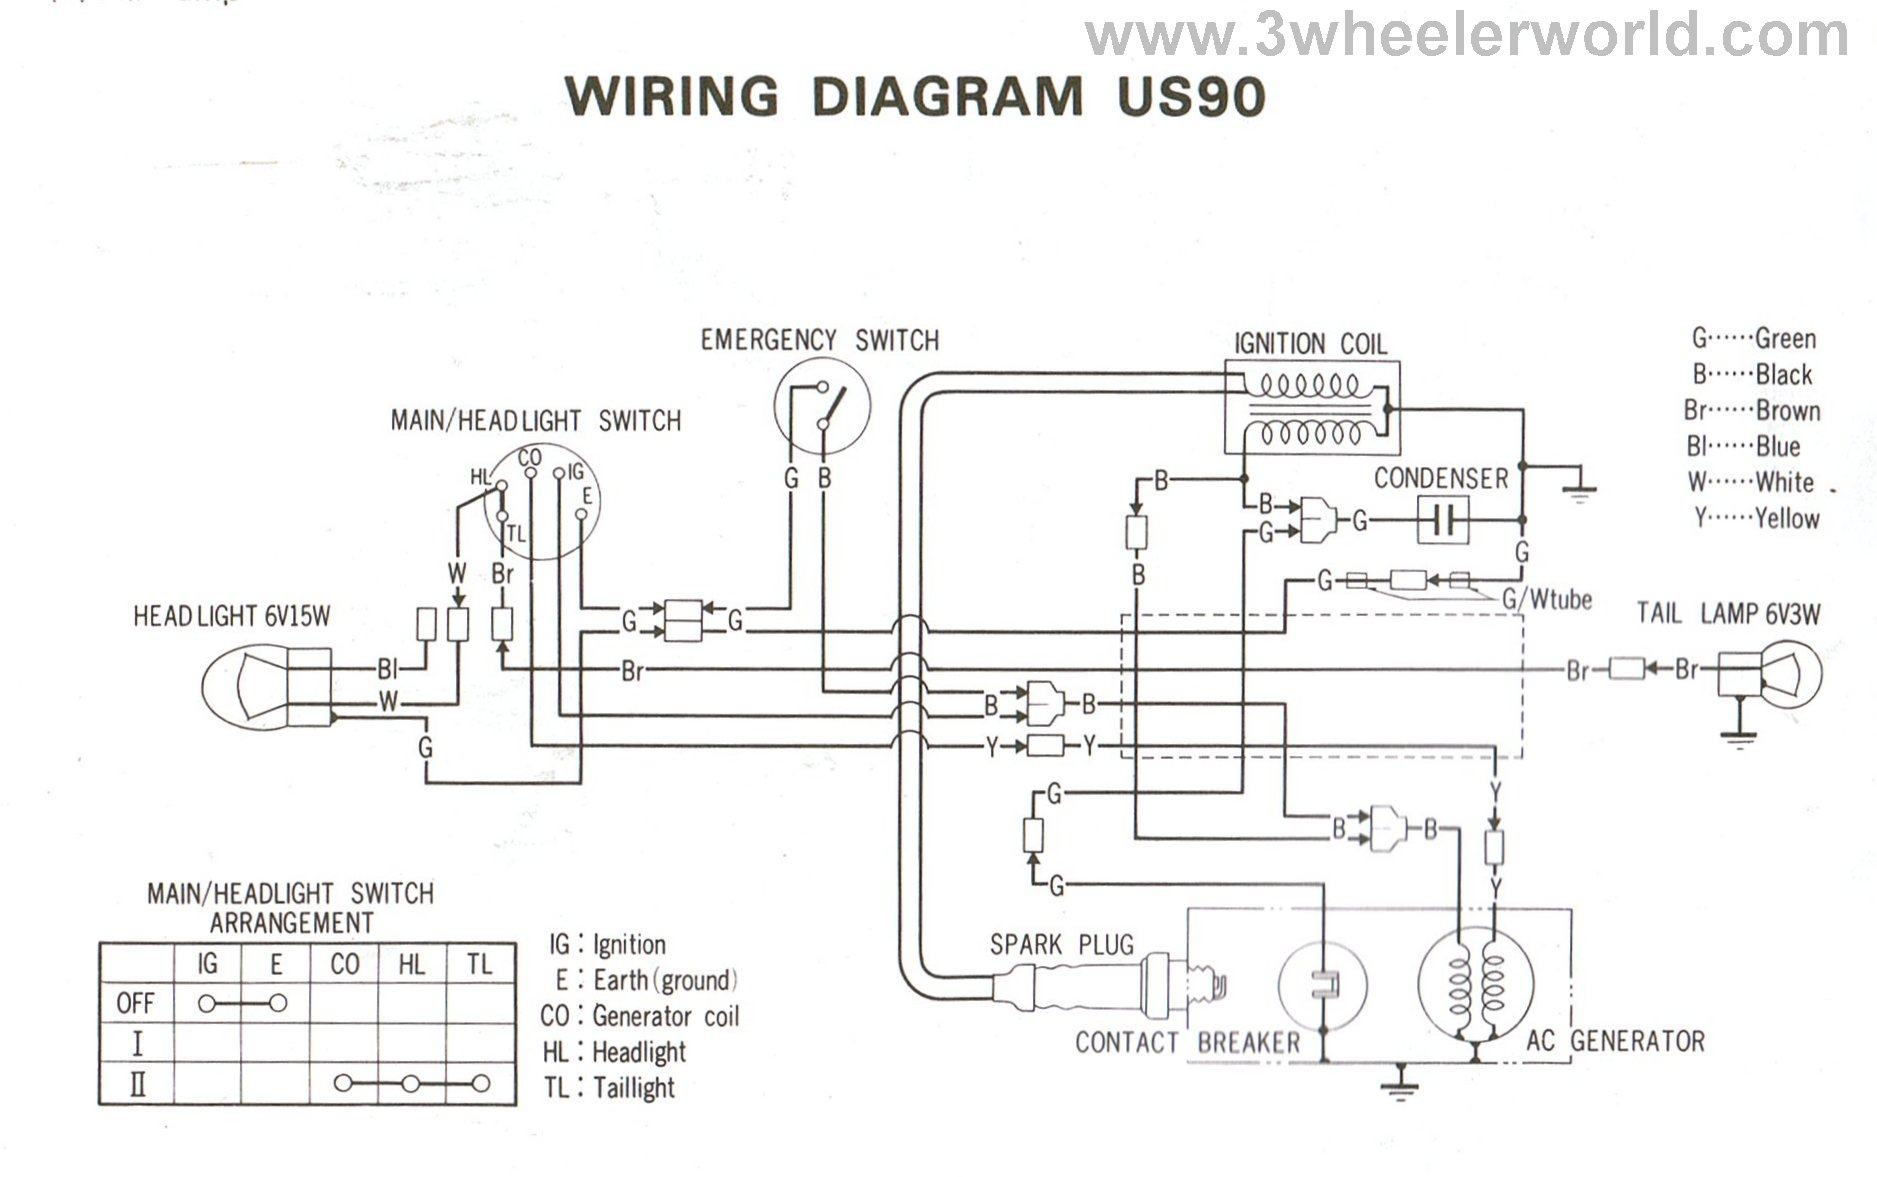 US90HM atc 300 wiring diagram atc 300 software \u2022 indy500 co  at bayanpartner.co